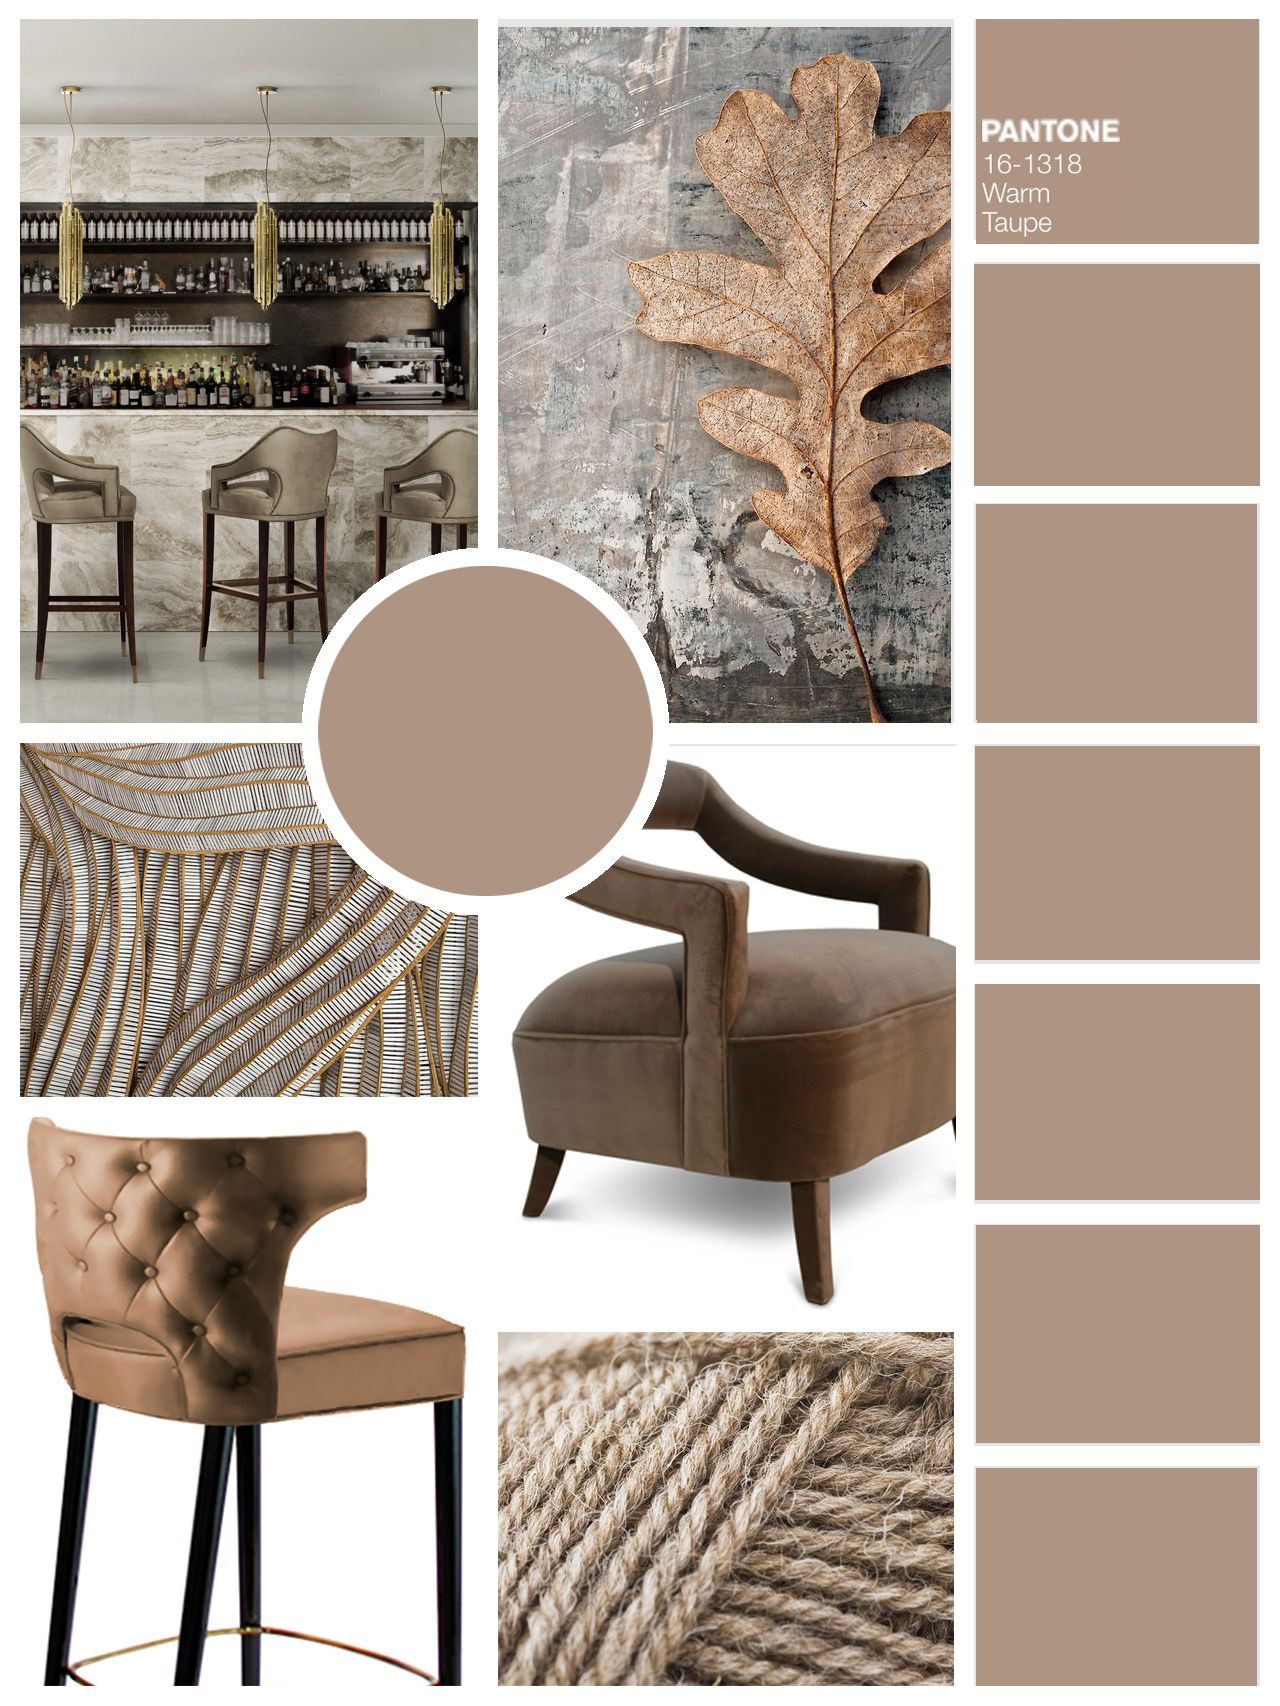 WARM TAUPE Fall 2016 Color Trends According To Pantone Home